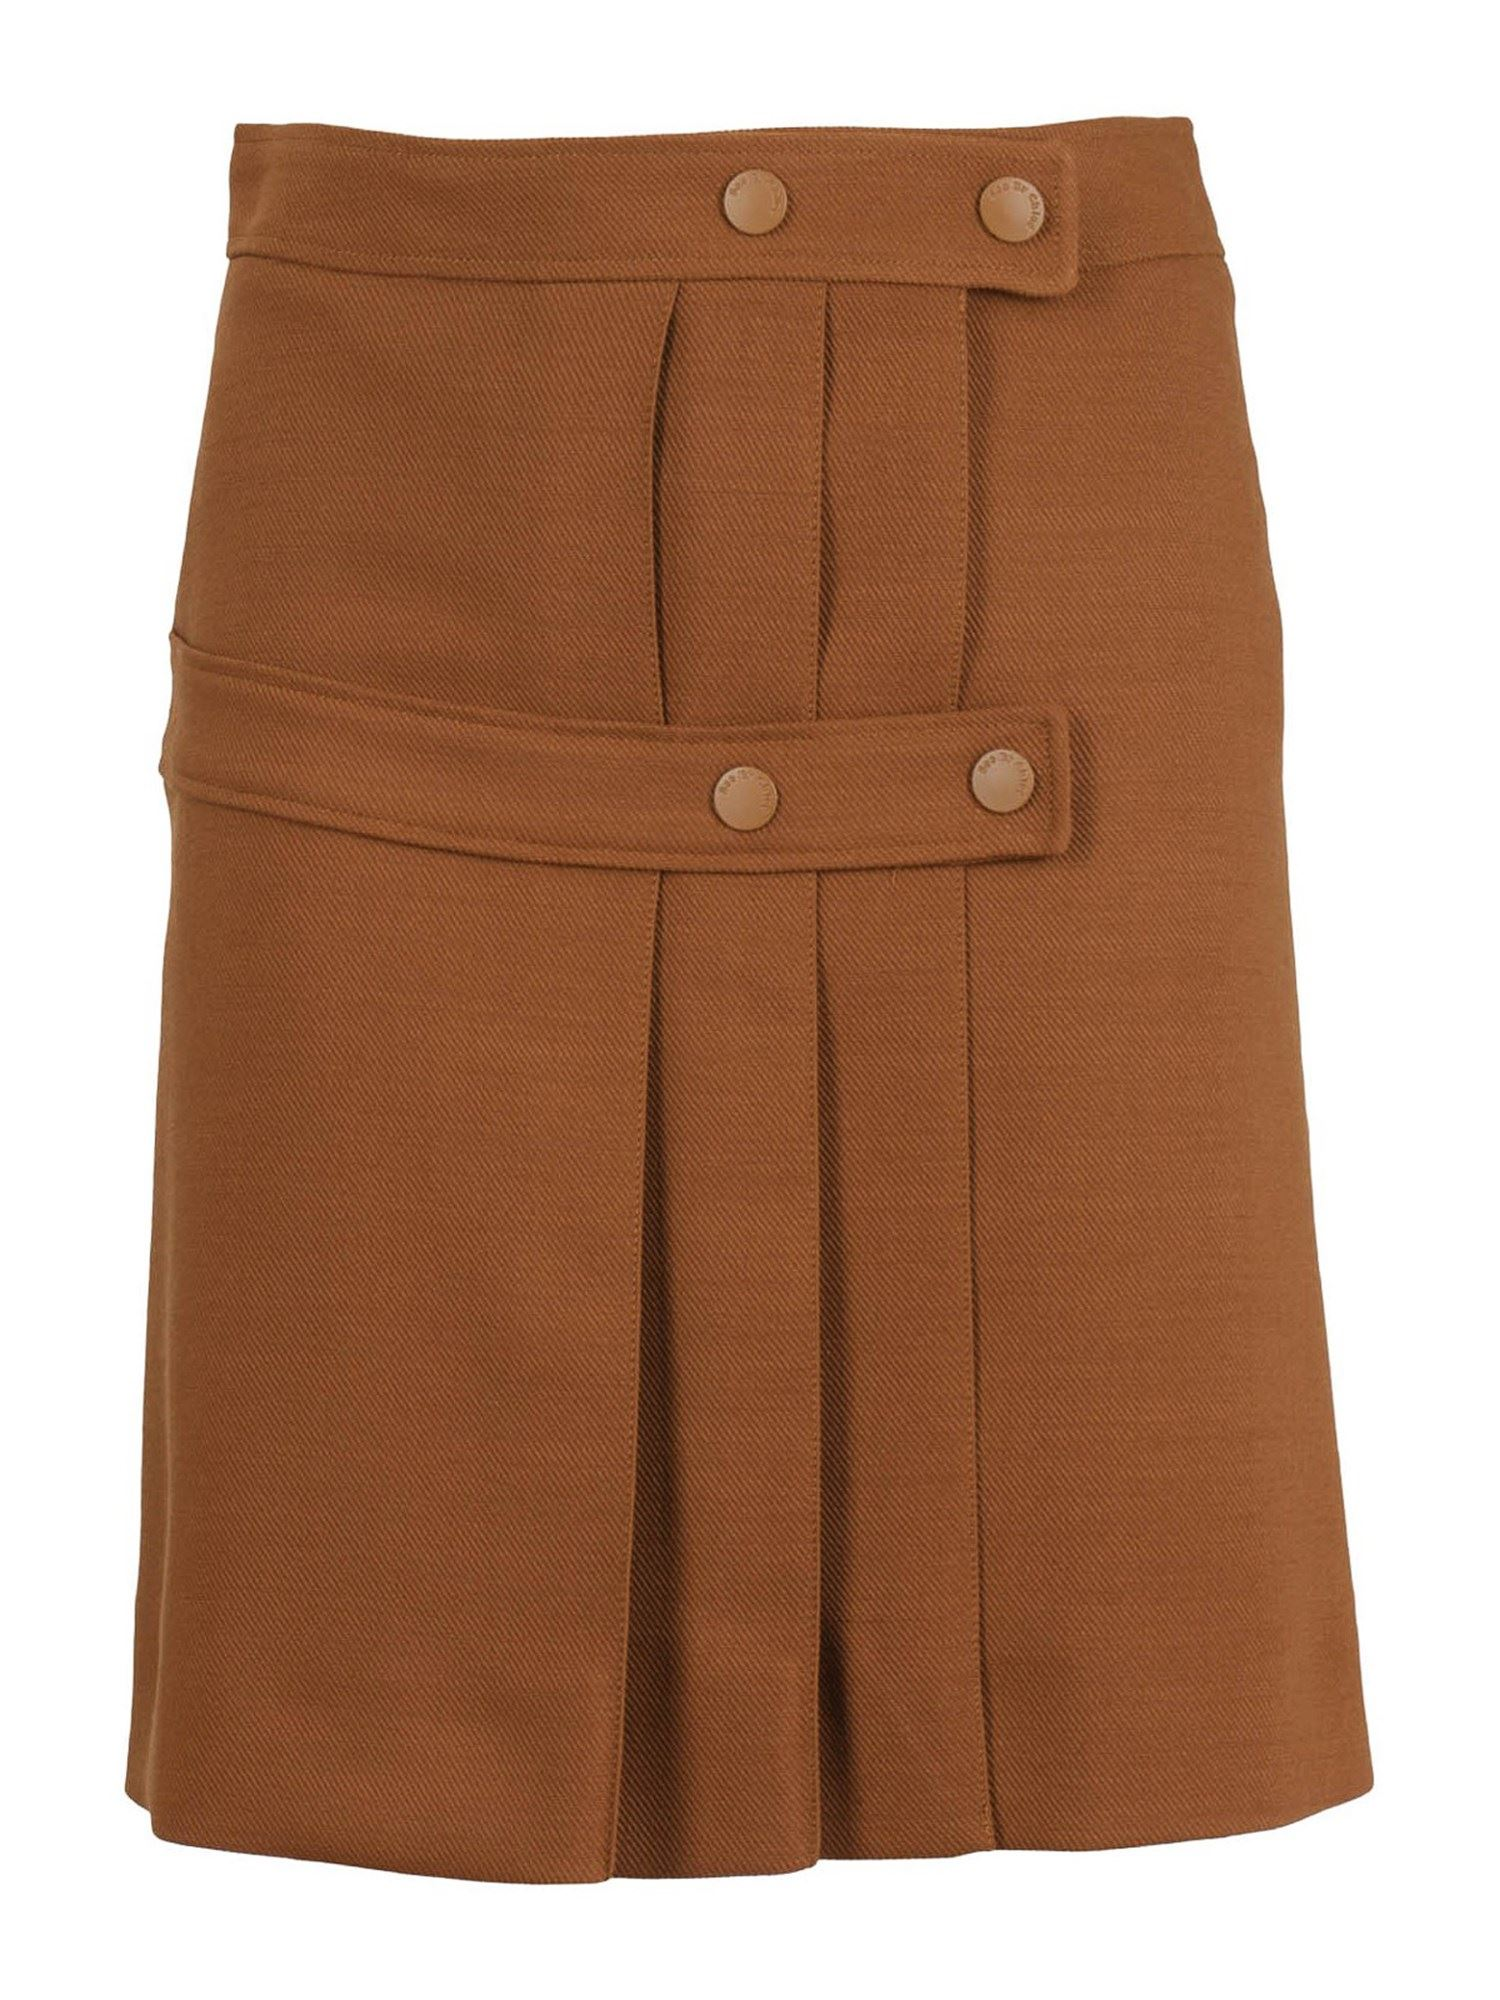 SEE BY CHLOÉ WOOL MINI PLEATED SKIRT WITH BUTTONED STRAPS